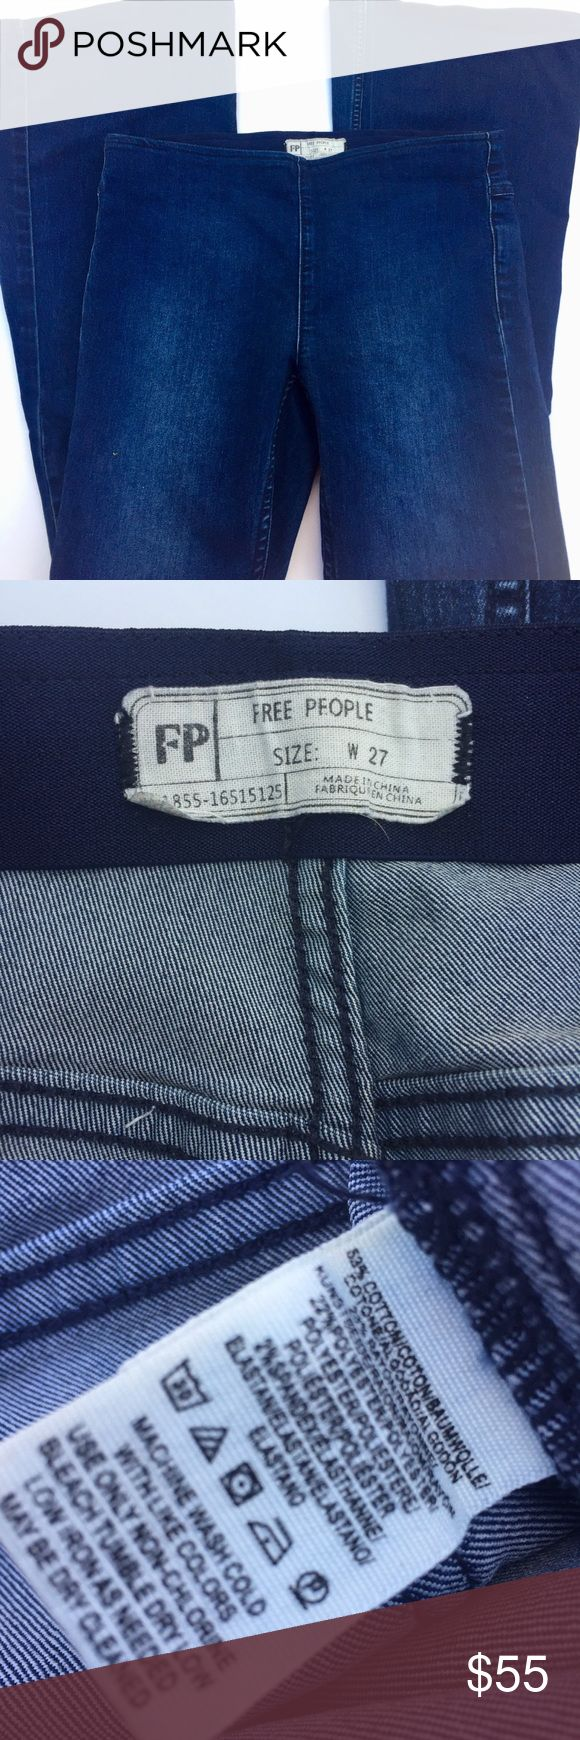 Free People Penny Pull On Flare Jeans 27/30.5 Super cute jeans waist has an elastic band and are super slimming waist measures 15in rise 9in inseam 30.5 in ankle width 11.5 any questions please ask!!53% cotton 23% rayon 22% polyester 2% spandex Free People Jeans Flare & Wide Leg